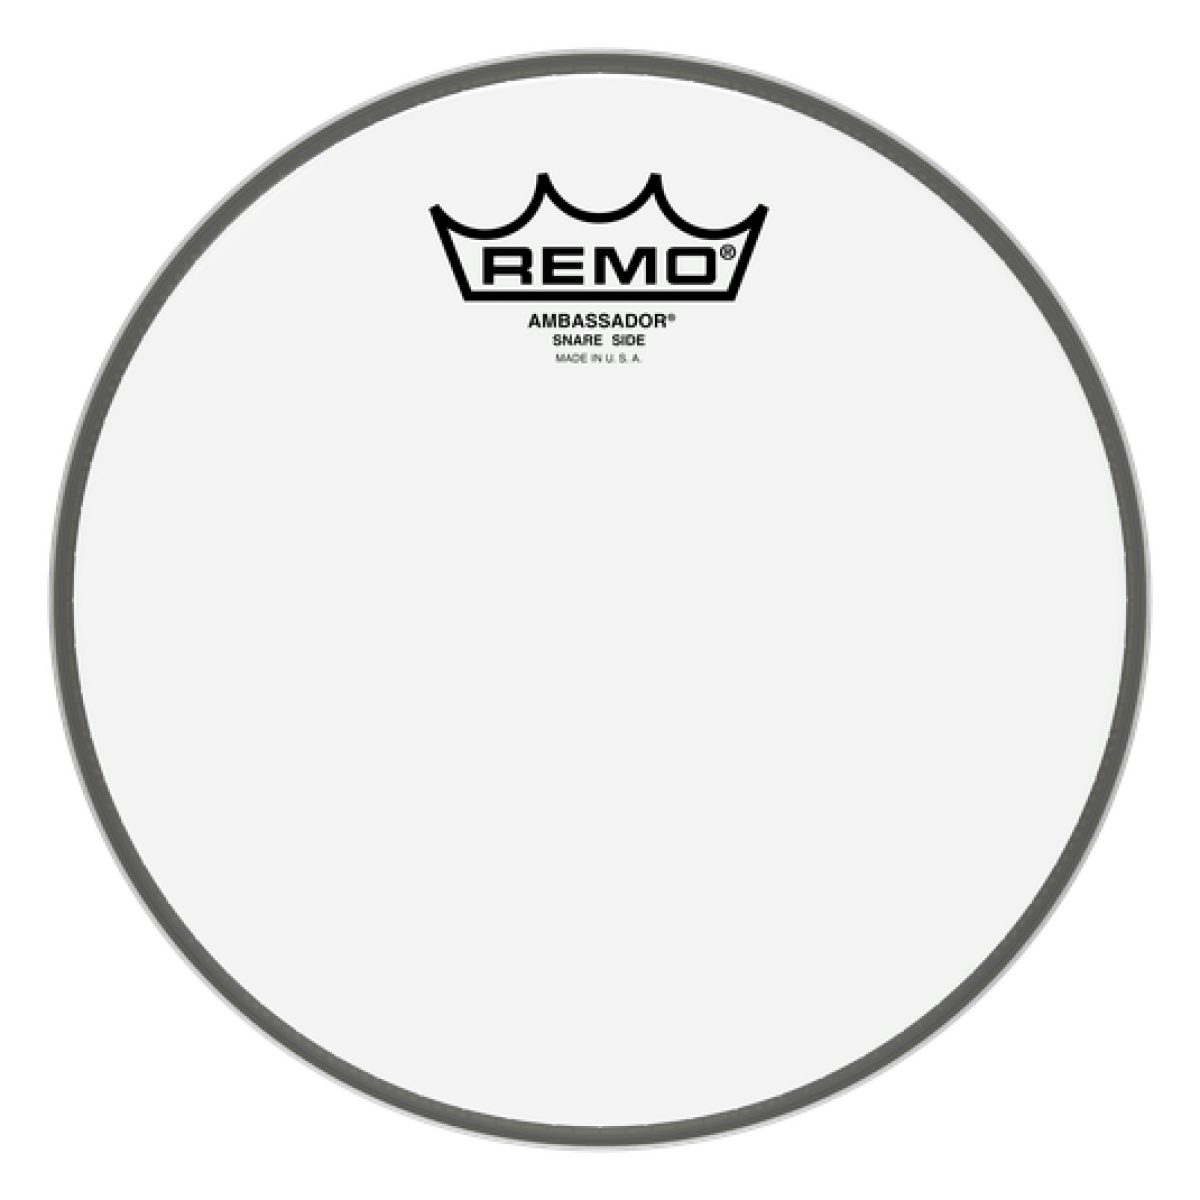 remo sa 0108 00 8 ambassador hazy snare side drum head skin. Black Bedroom Furniture Sets. Home Design Ideas